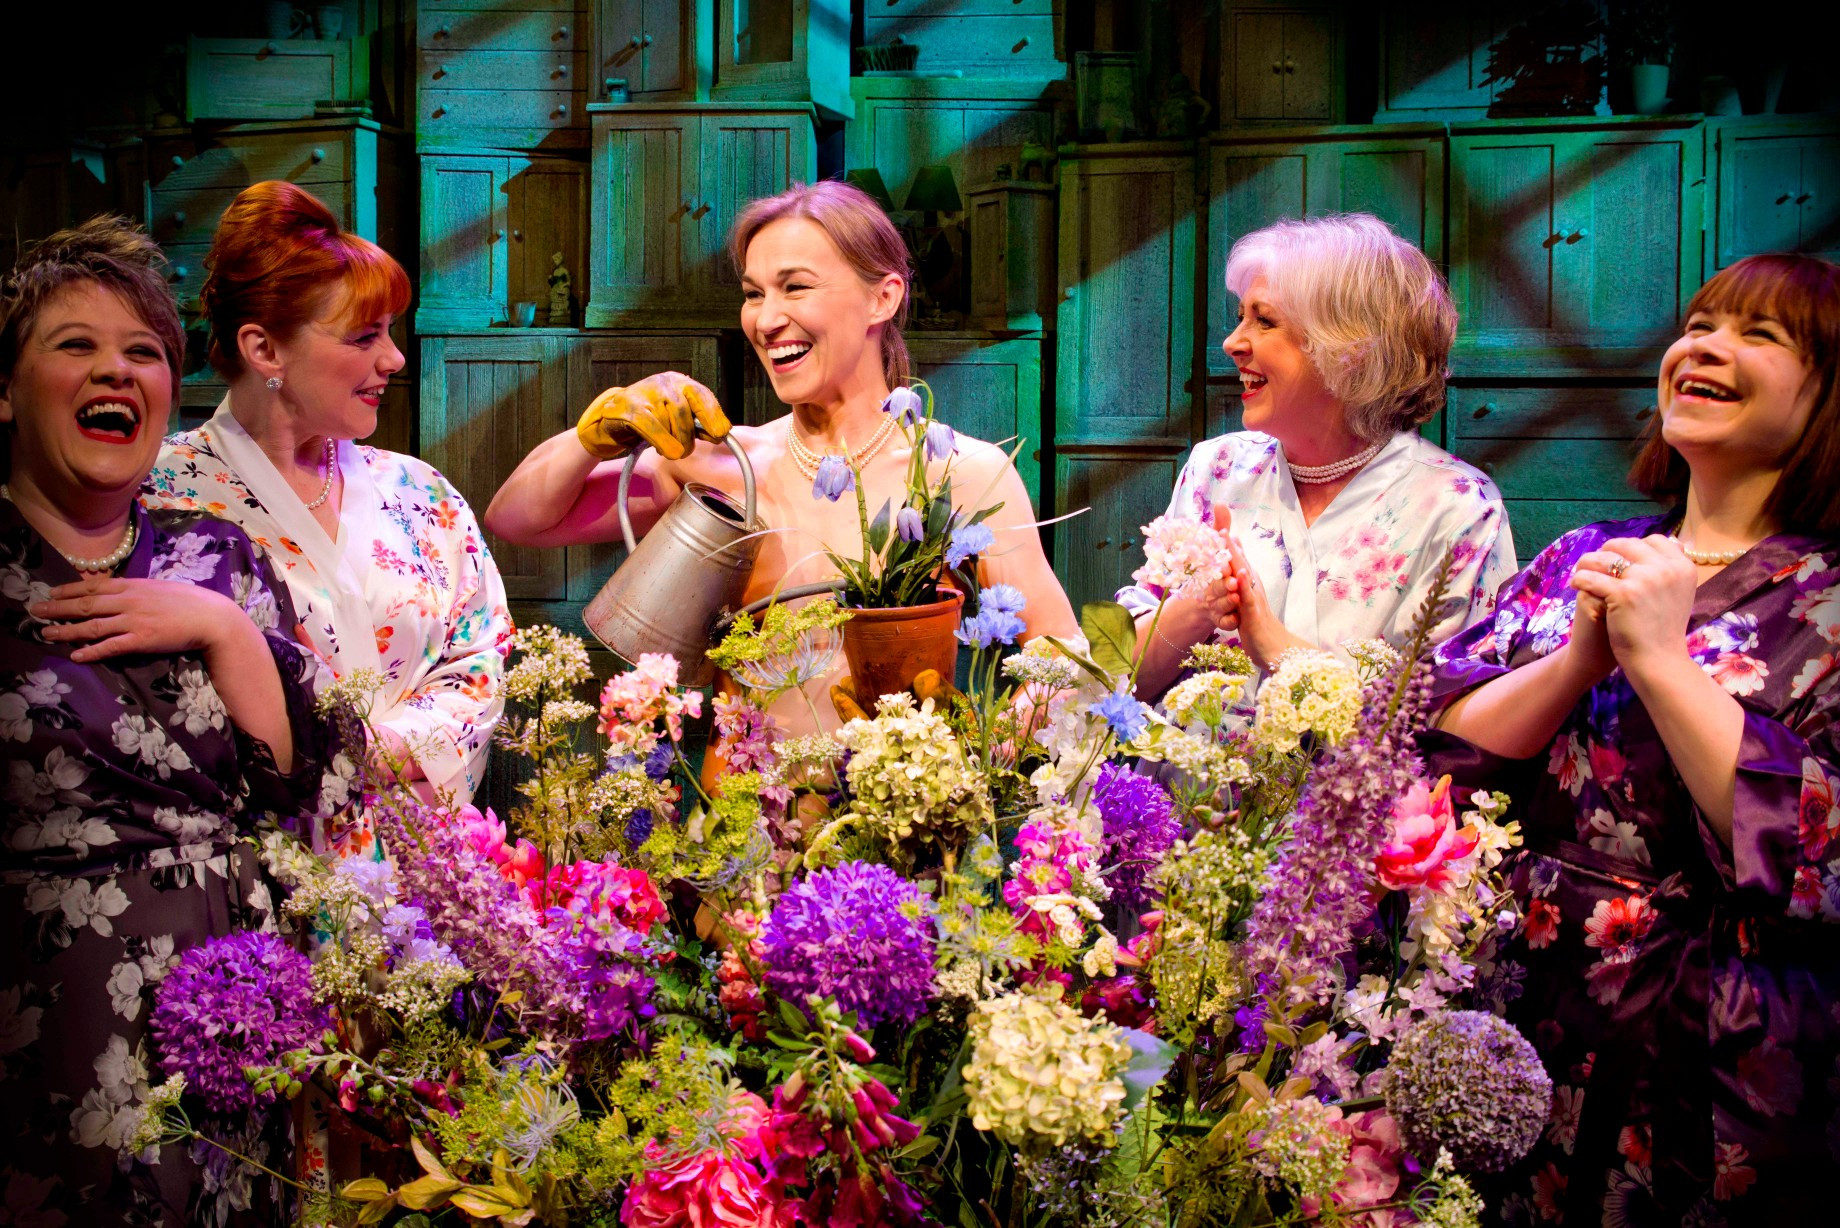 they-ve-bloomed-the-girls-extends-booking-introduces-tuesday-matinee